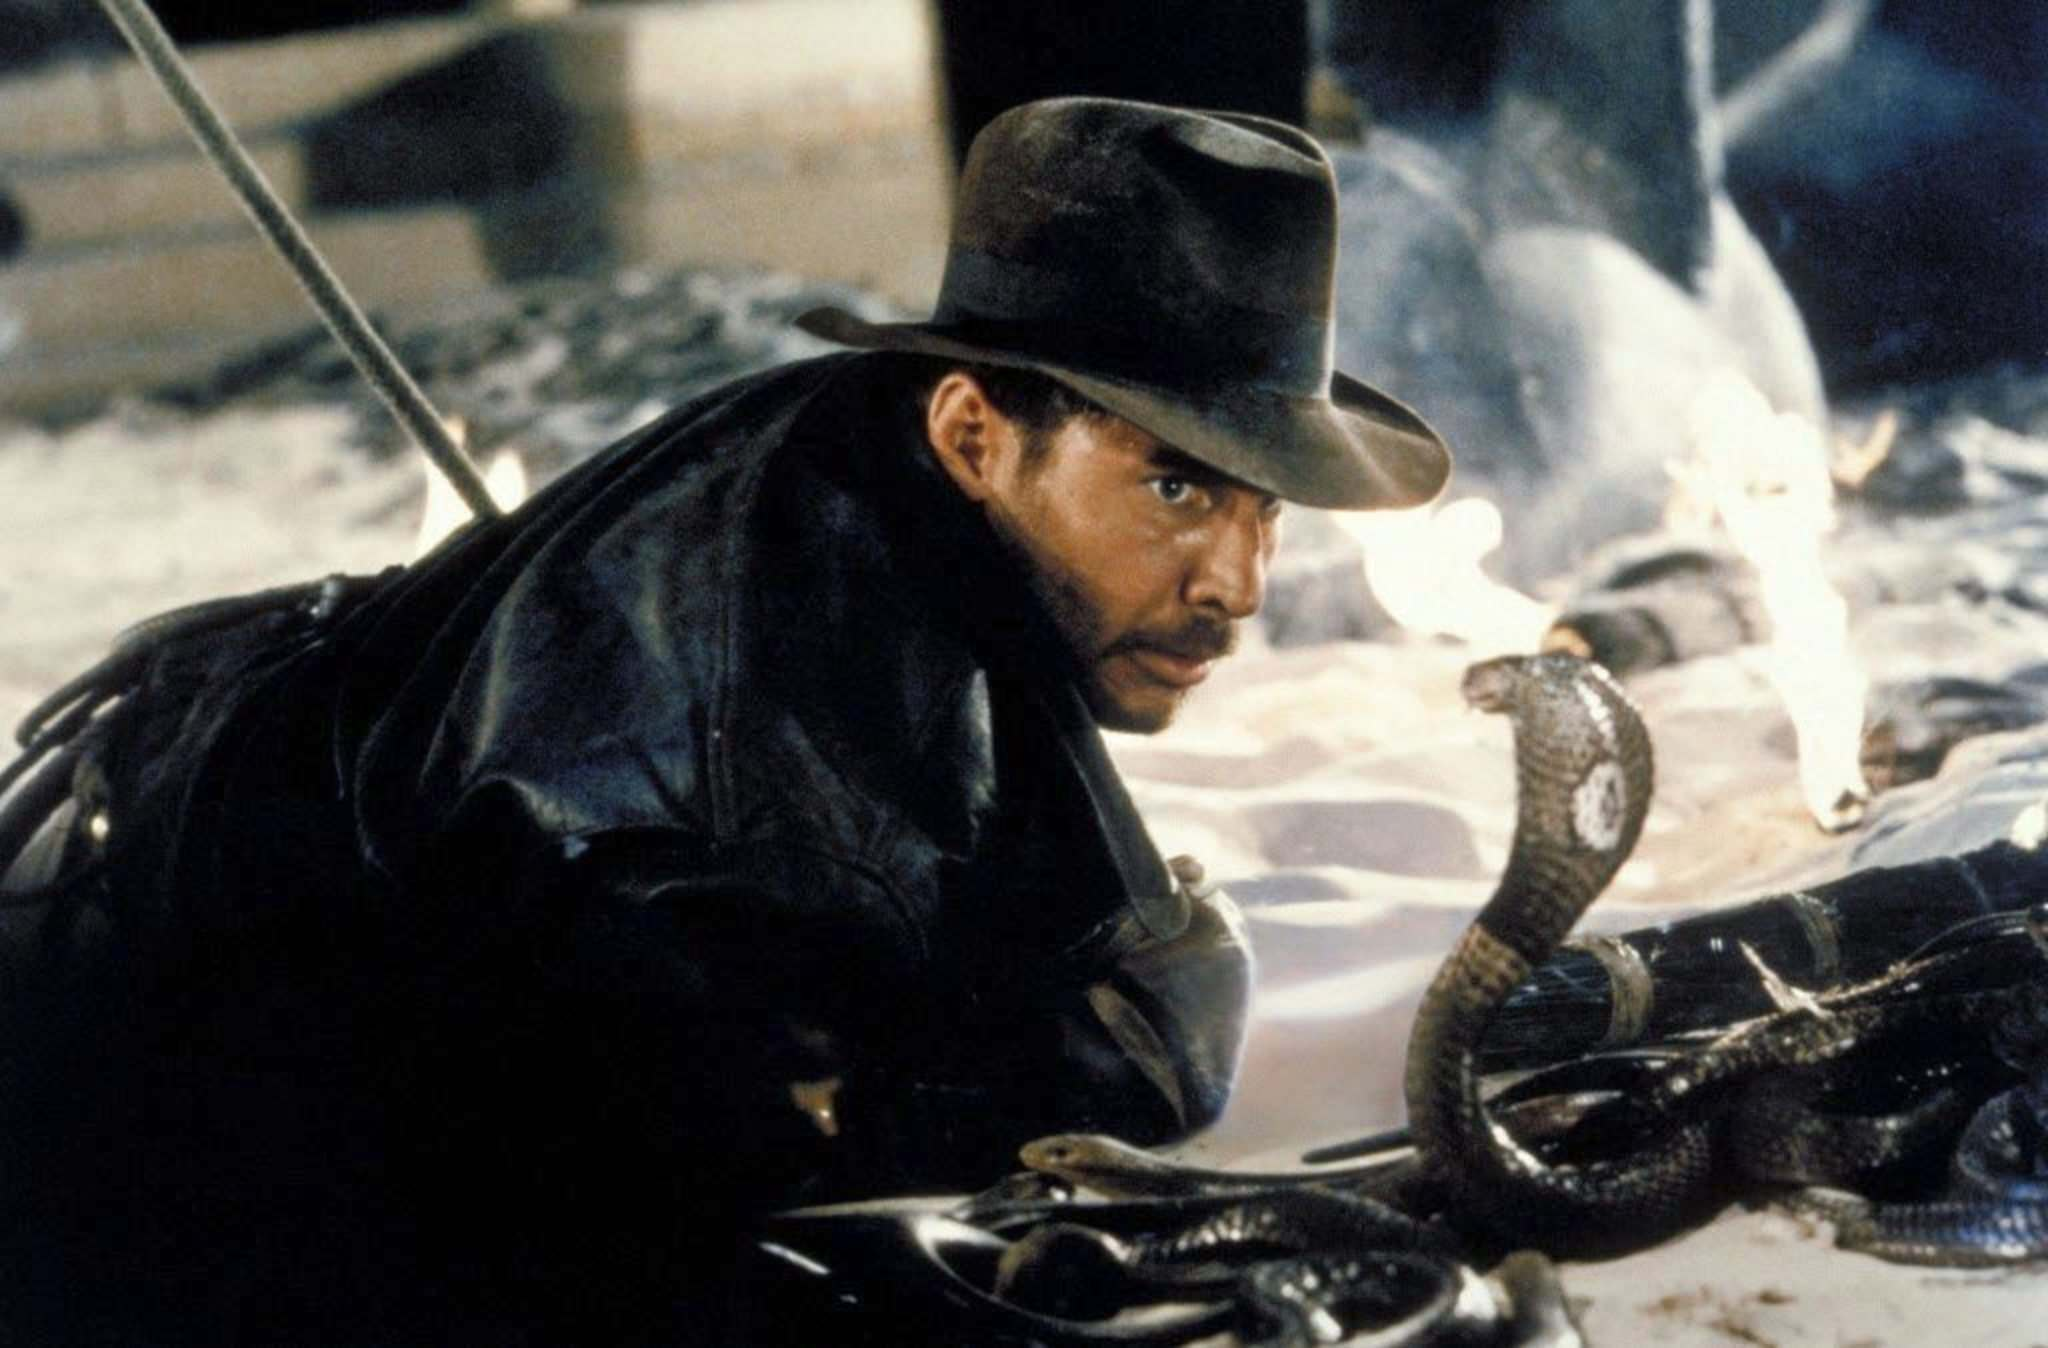 In Raiders of the Lost Ark, playing at Grant Park, Steven Spielberg shows off his flair for action; sequences in this 1981 Indiana Jones film stand the test of time.</p>